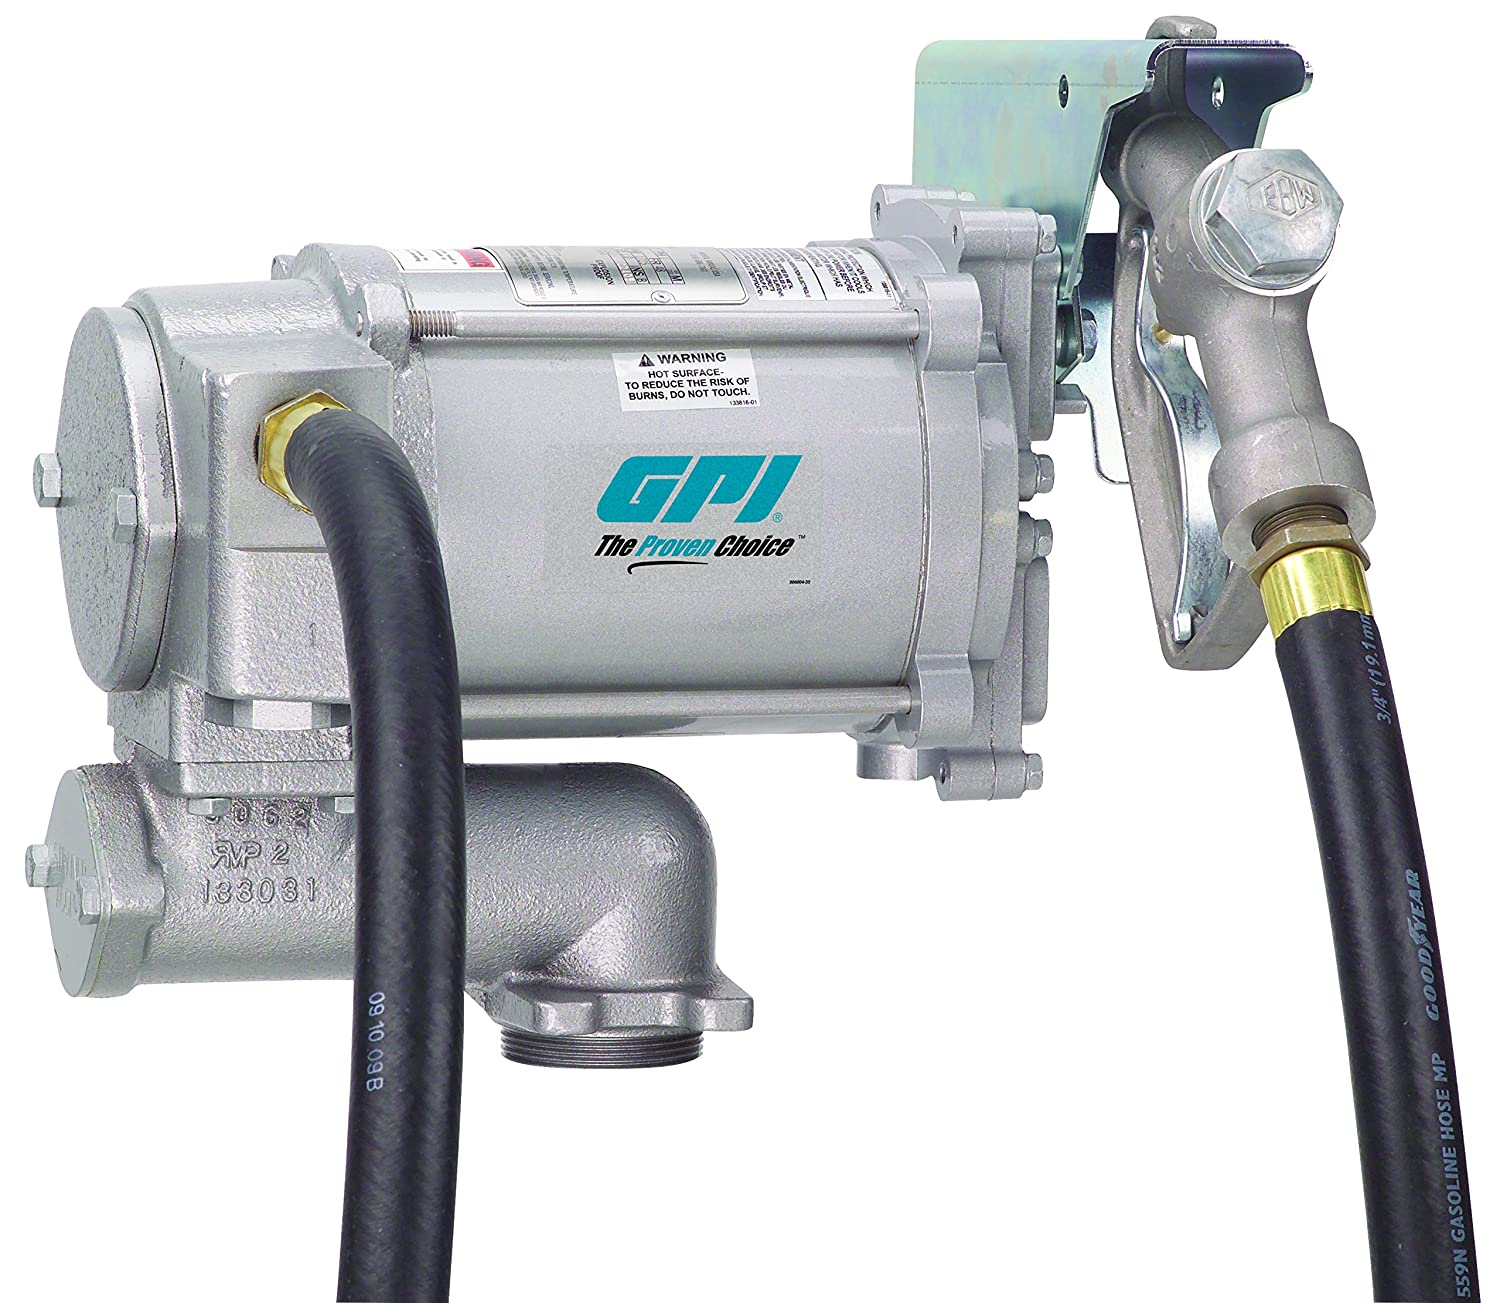 115-VAC Weight Centering Base GPI 133200-1 0.75-Inch X 12-Foot Hose 20 GPM M-3120-ML High Flow Cast Iron Fuel Transfer Pump Manual Nozzle